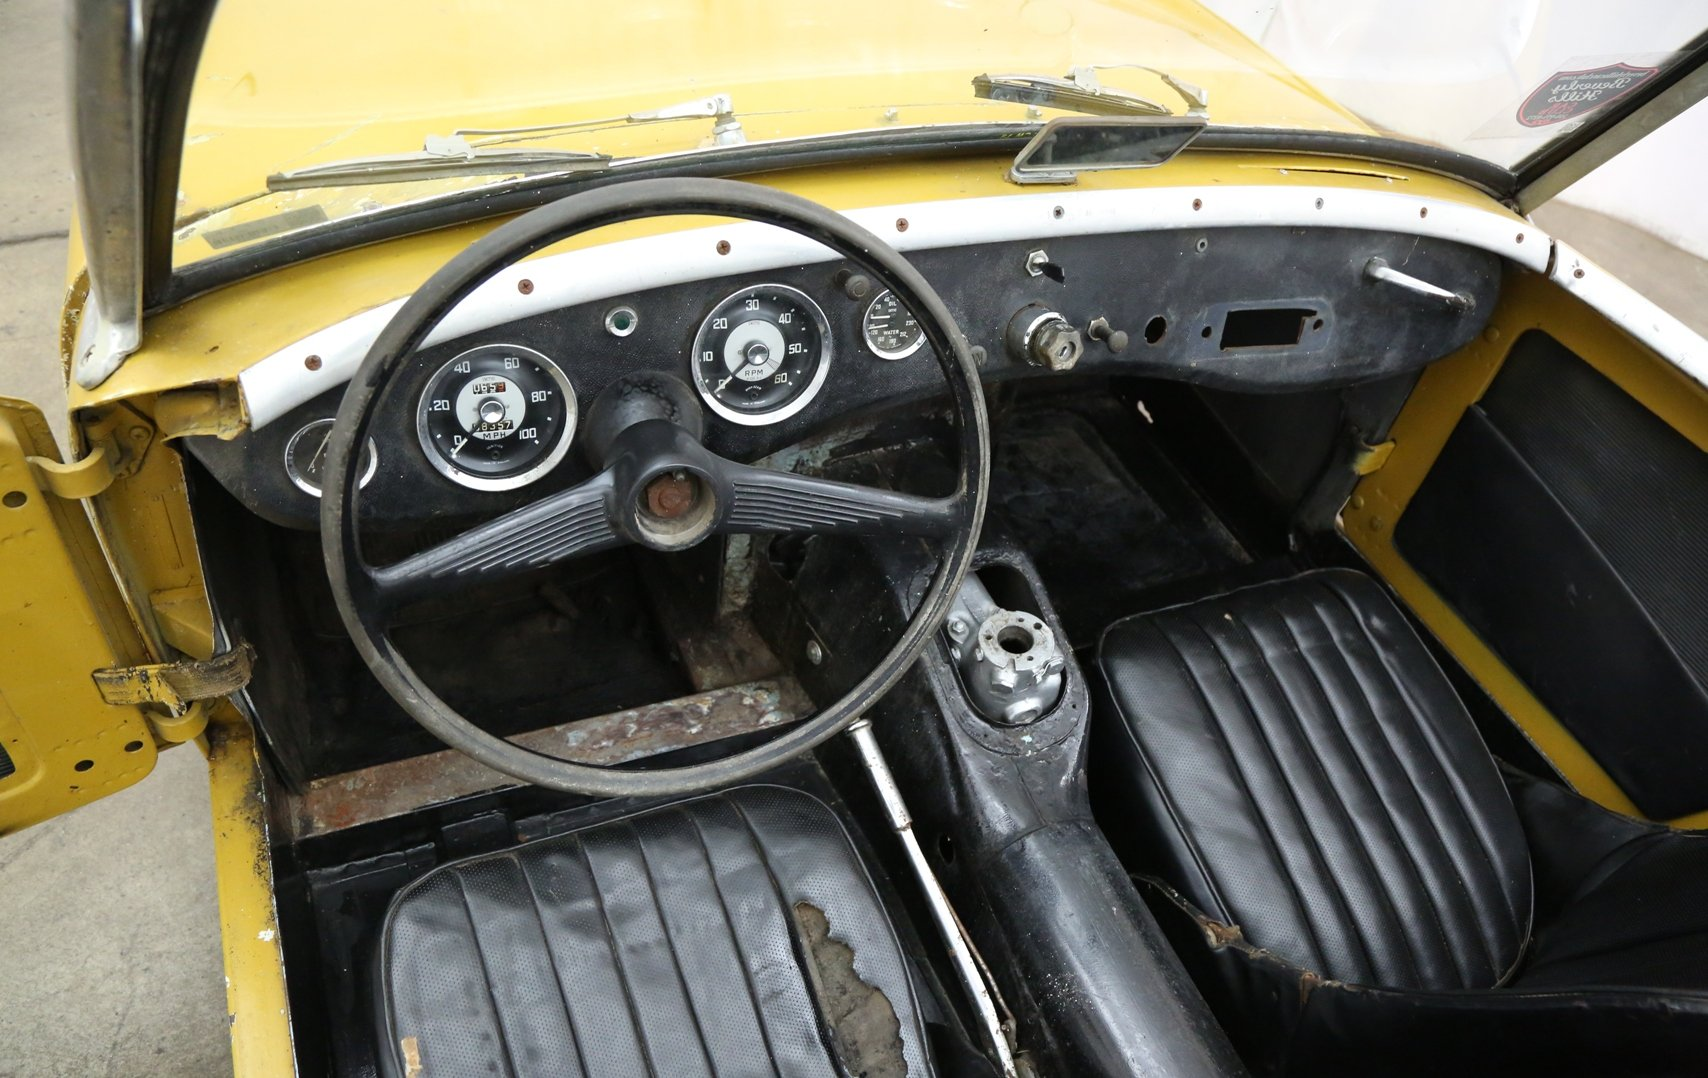 1960 Austin Healey Frogeye Sprite solid LHD Project For Sale (picture 5 of 6)